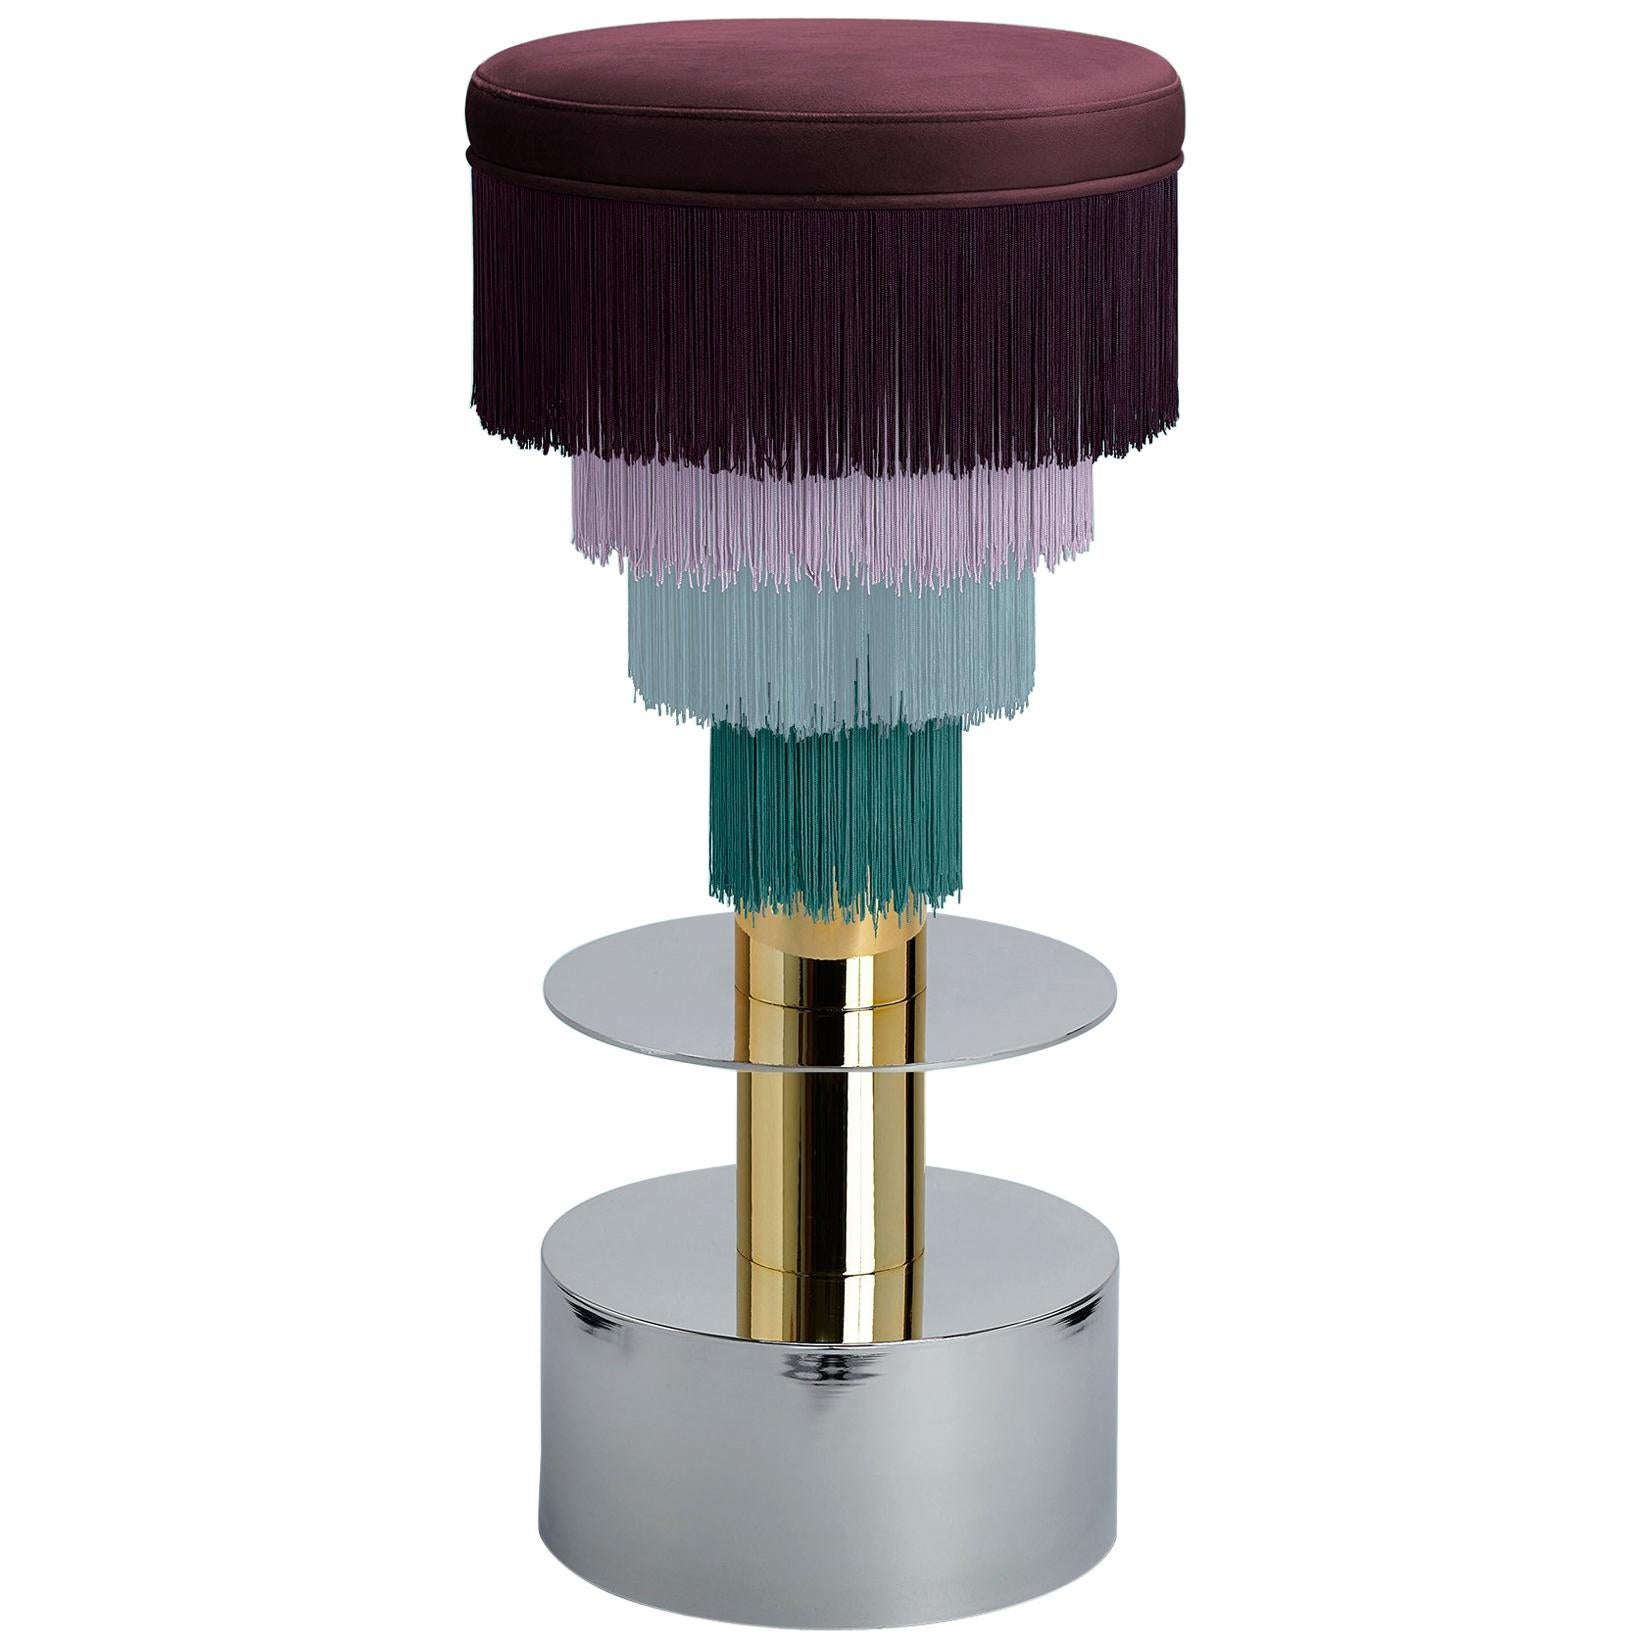 Deja Vu Wine and Pink Stool with 24-Karat Gold-Plated Metal and Velvet Fringes